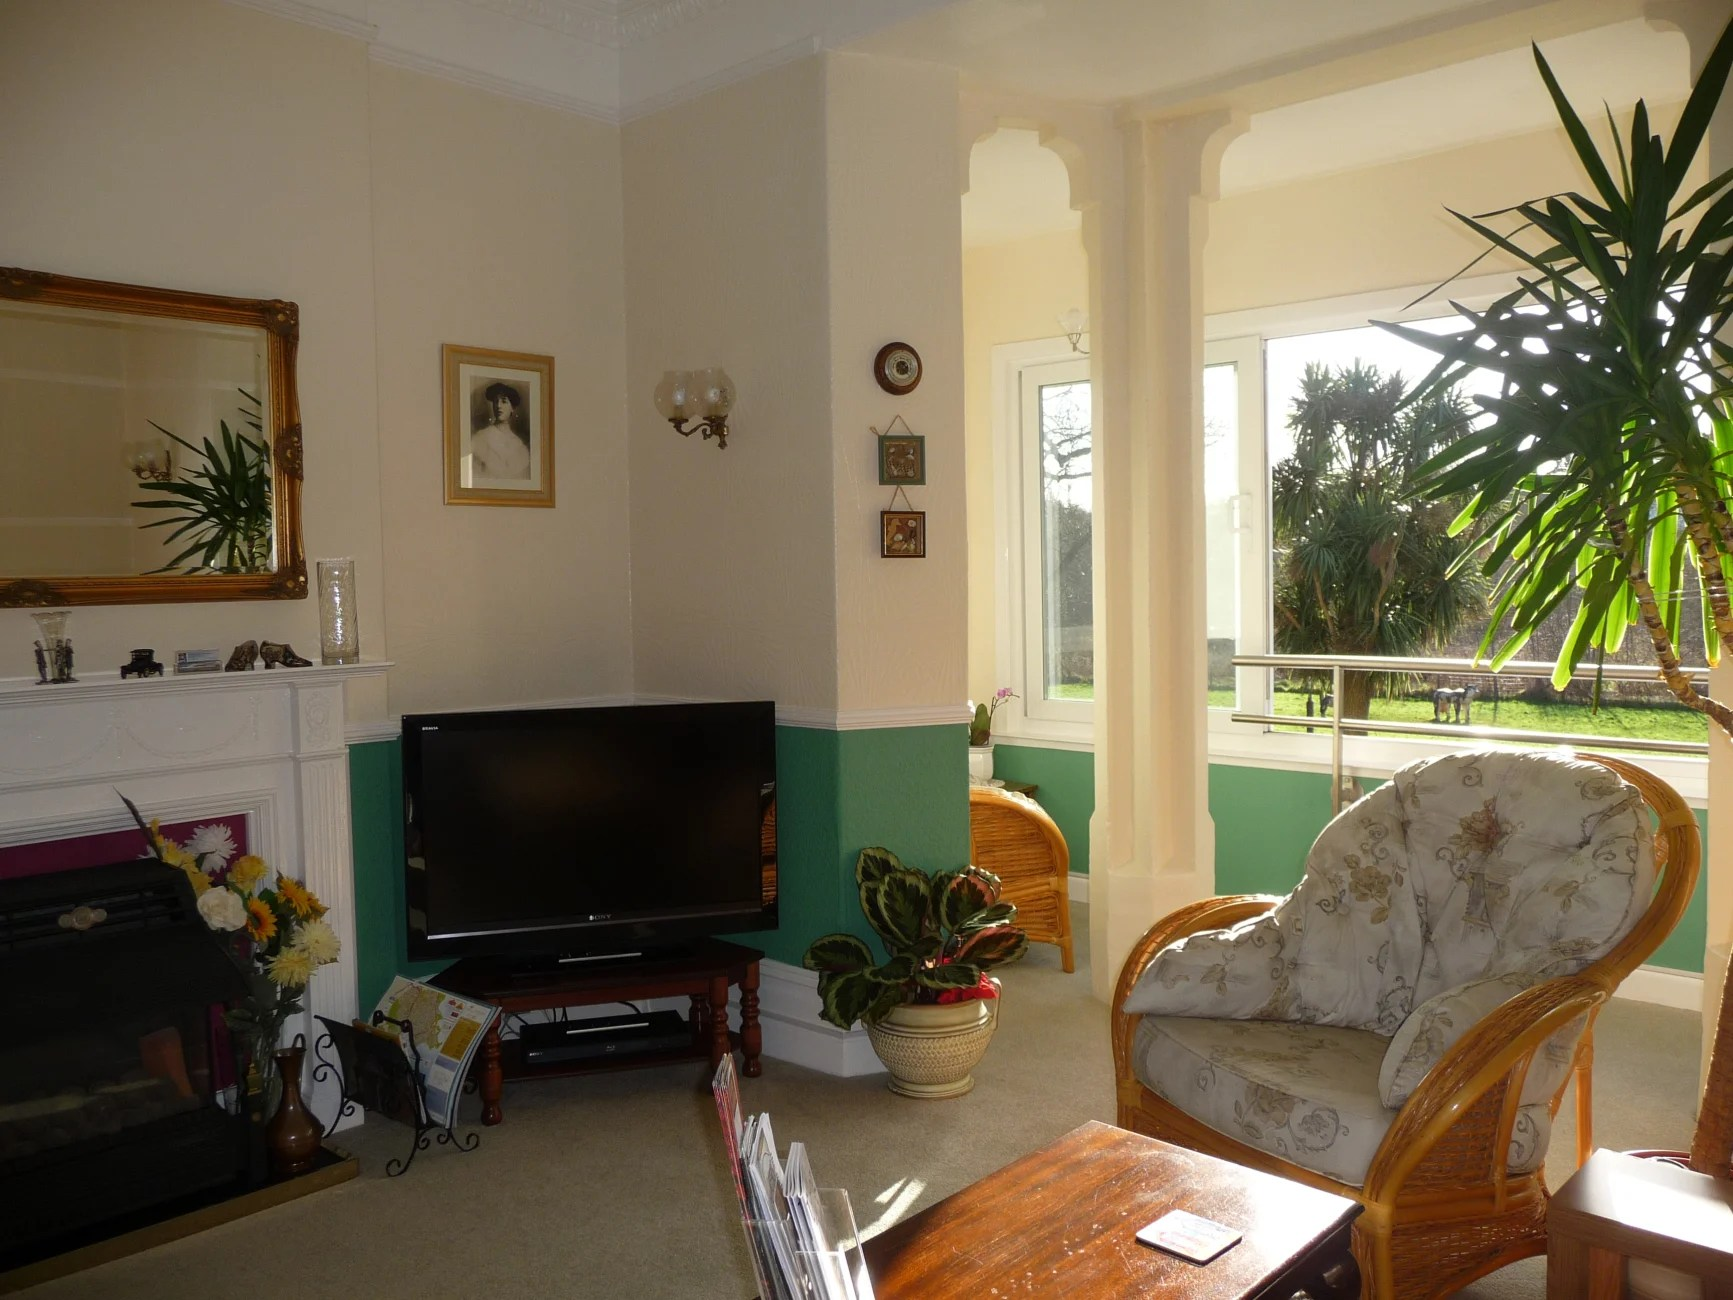 Bed Breakfast The Wentworth Guest House Paignton Trivago Com